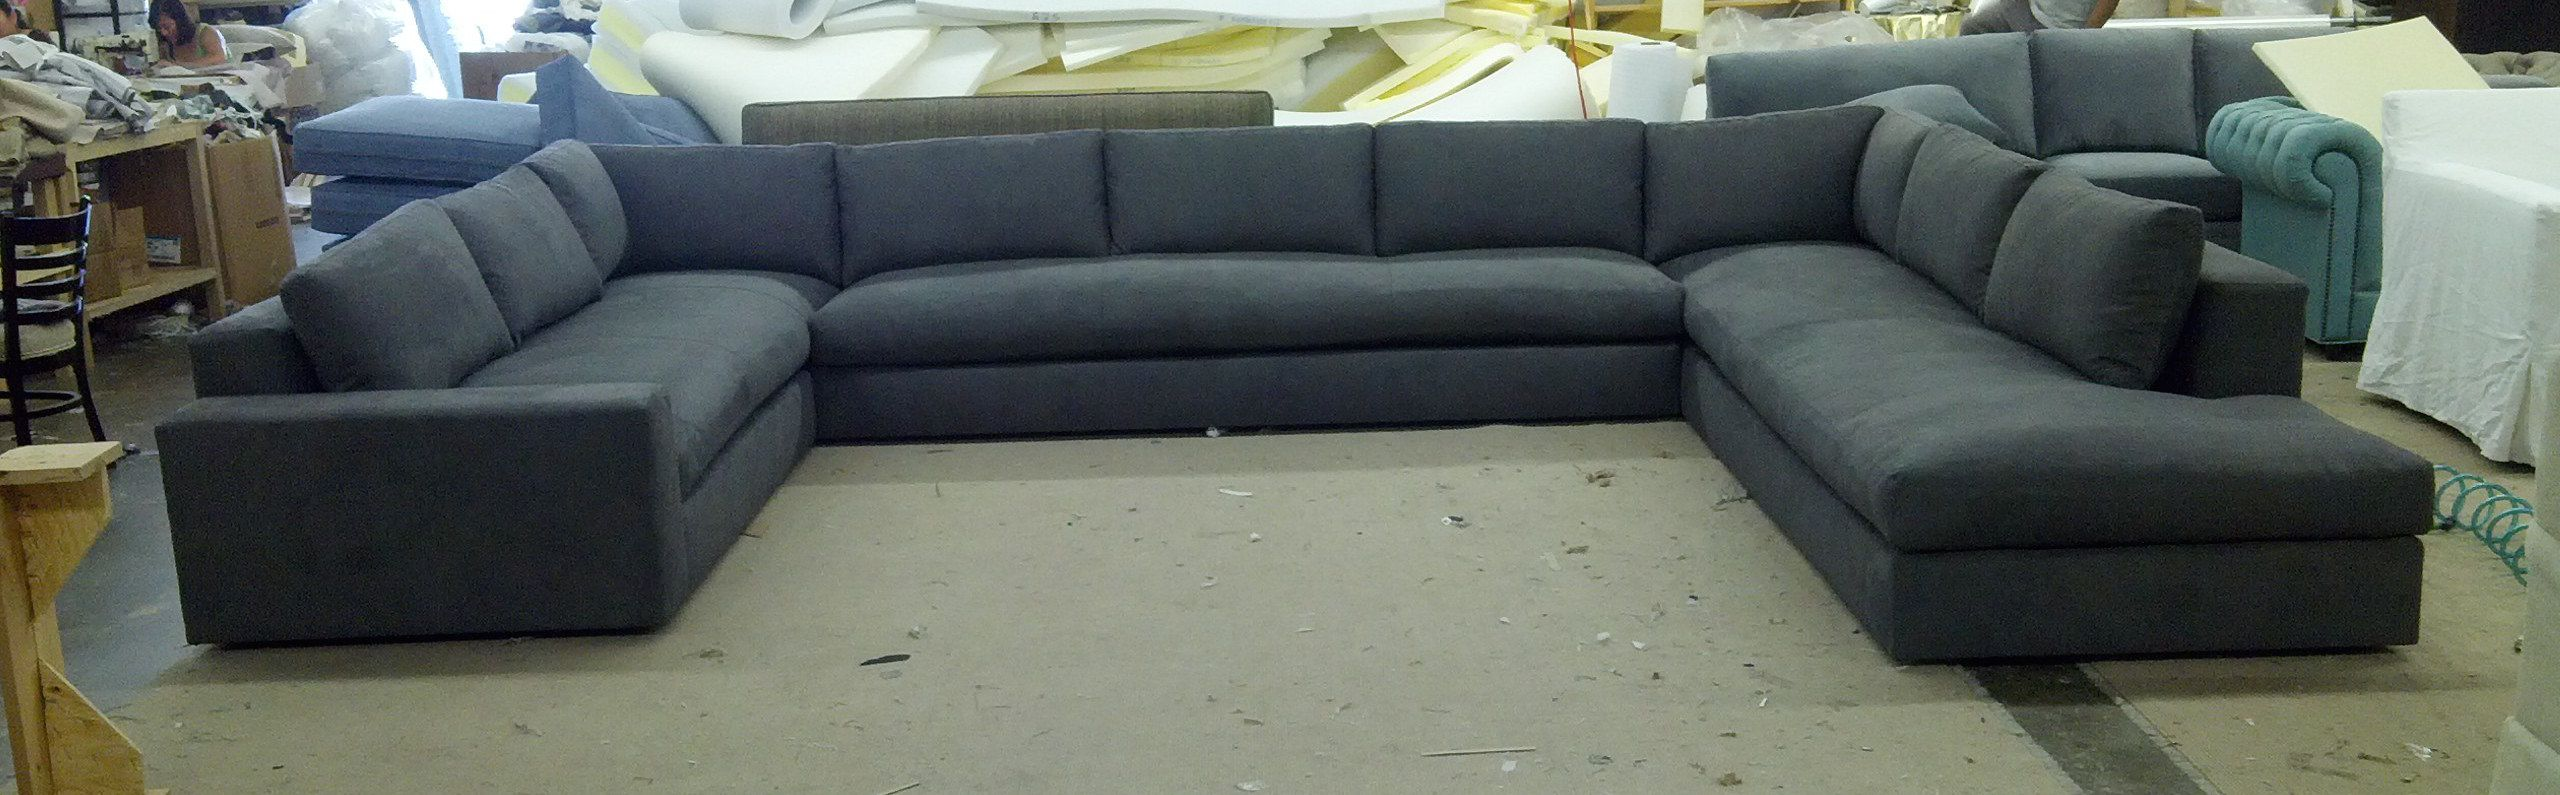 Dante U Shaped Sectional Every Style Can Be Customized In